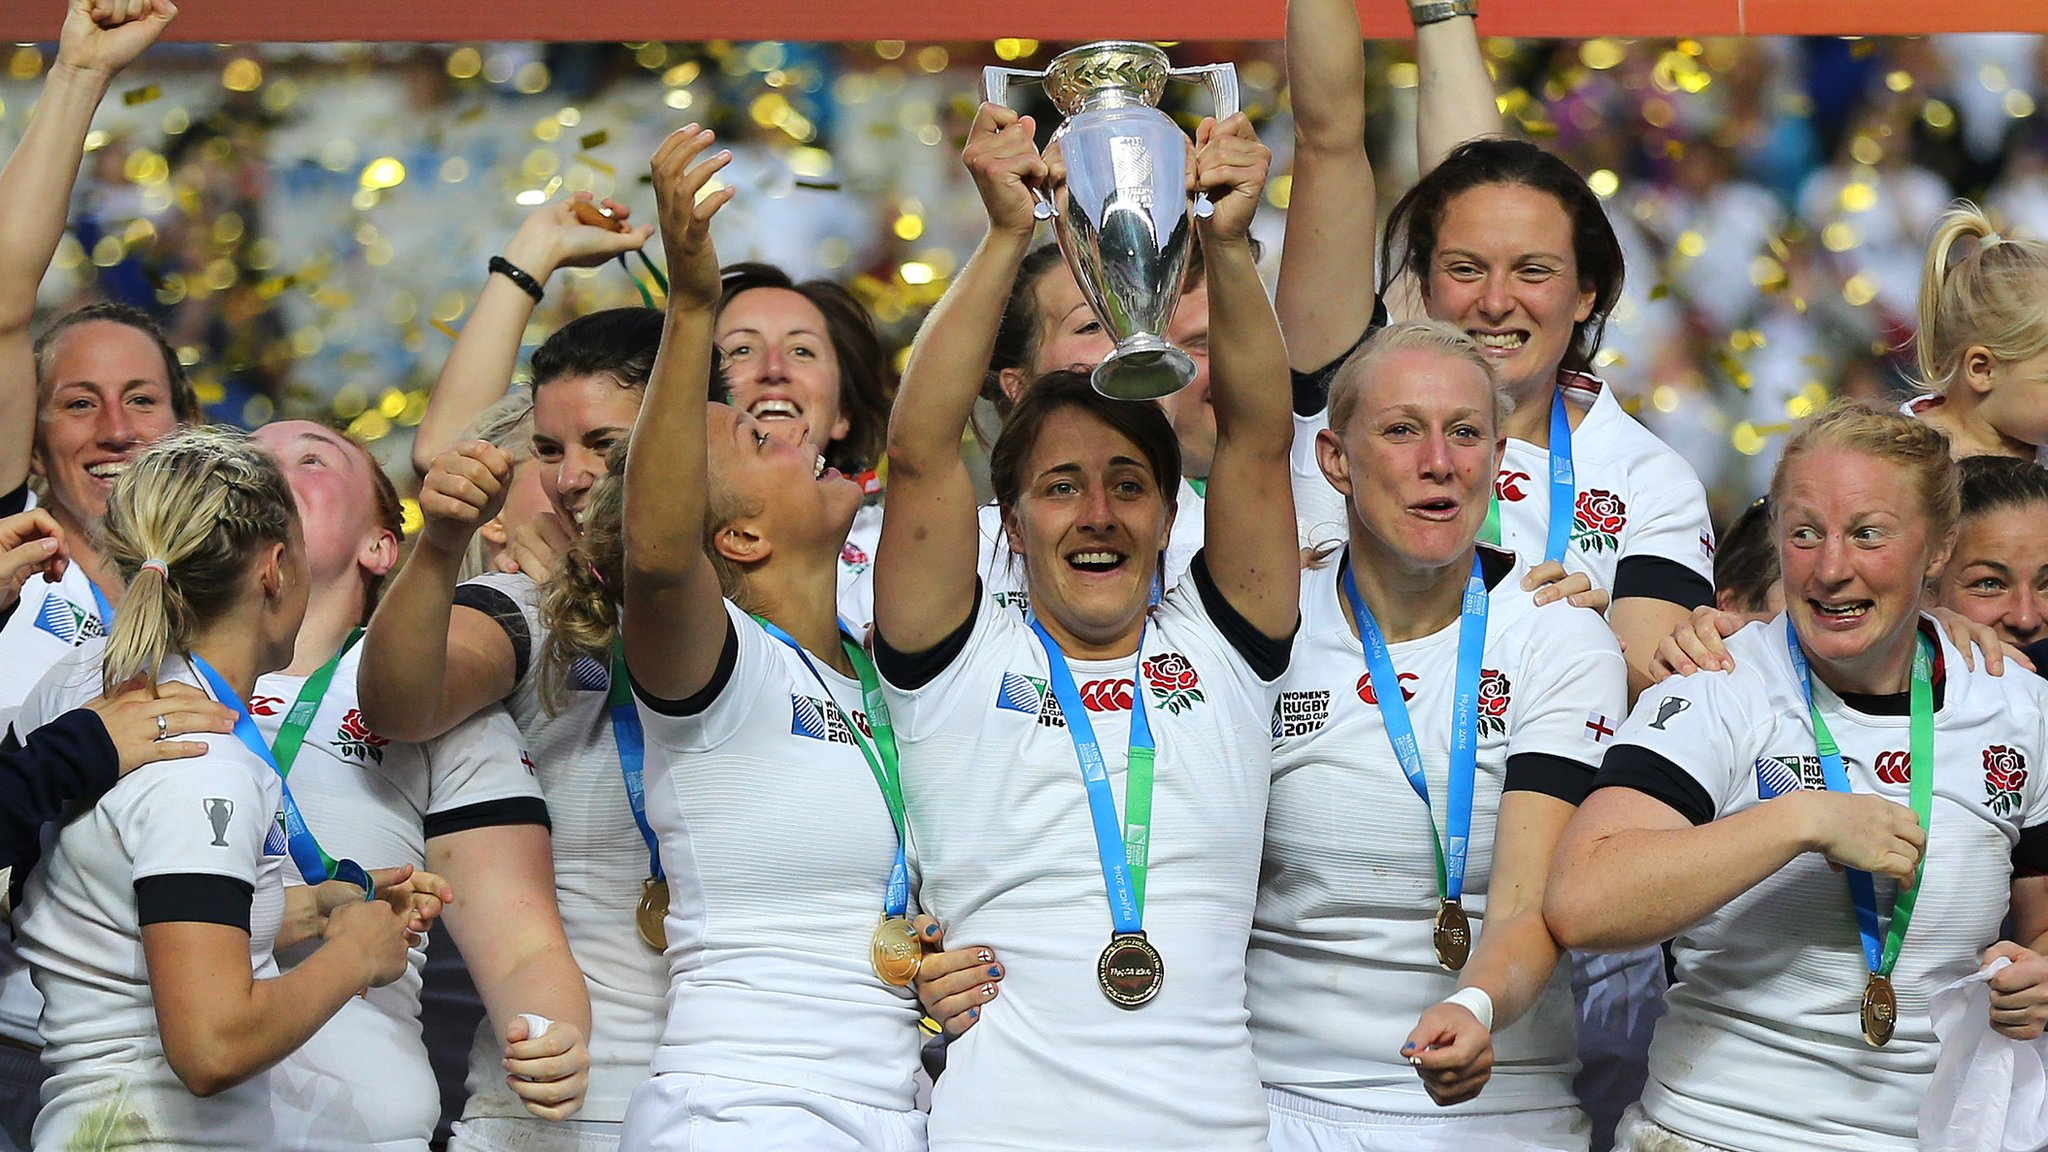 England women's 15-a-side players to get full-time contracts